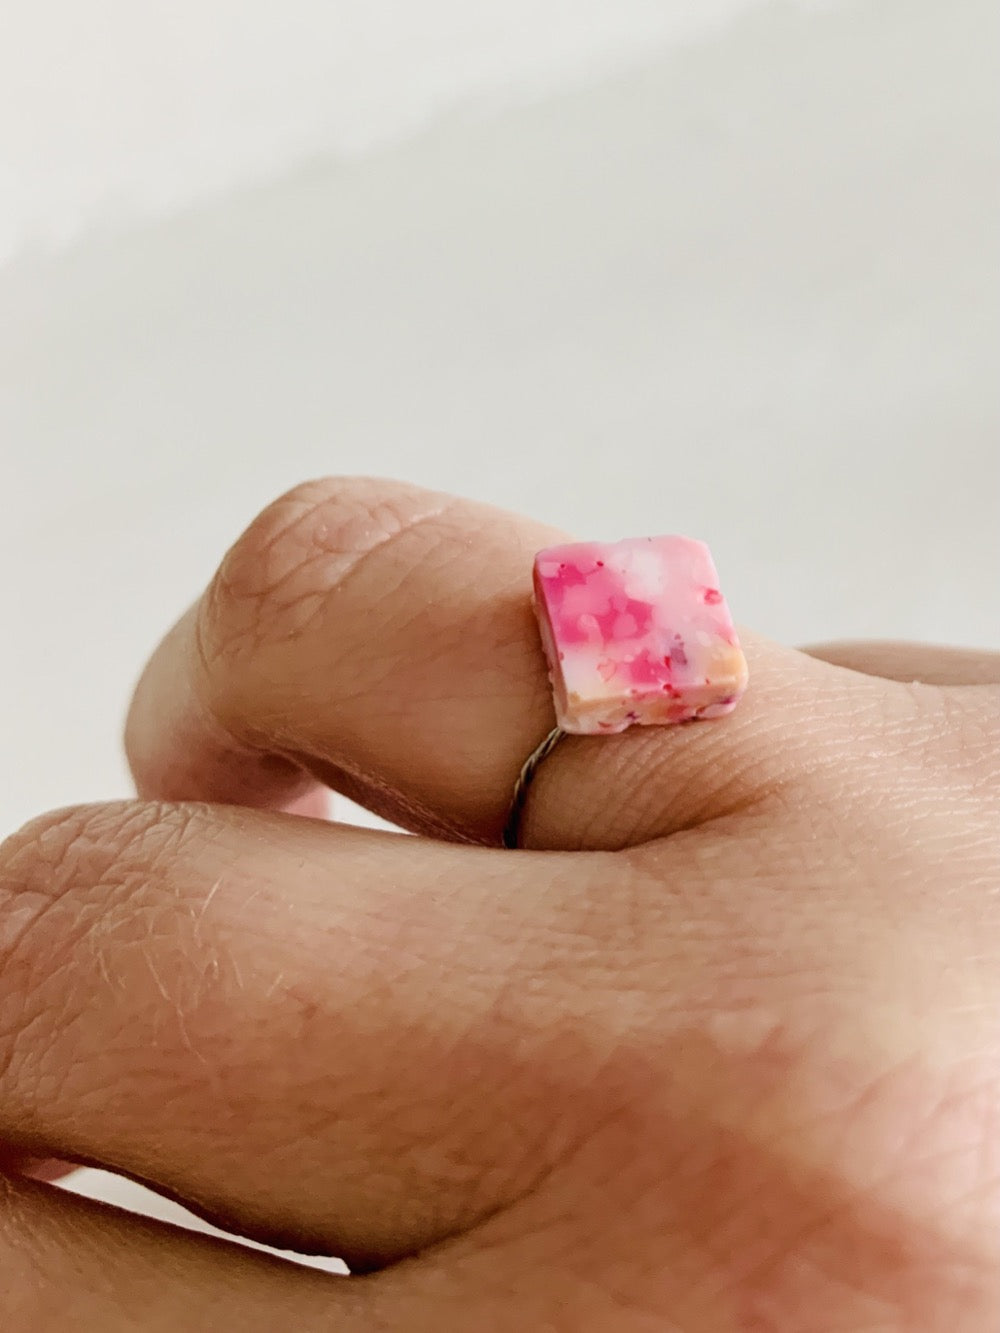 Shown on a person's ring finger and in front of a white background, there is a ring with a cast charm on a thin twisted band. The charm is cast from recycled 3D prints in shades of pinks, yellow, orange, and white. It has the look of granite or marble.